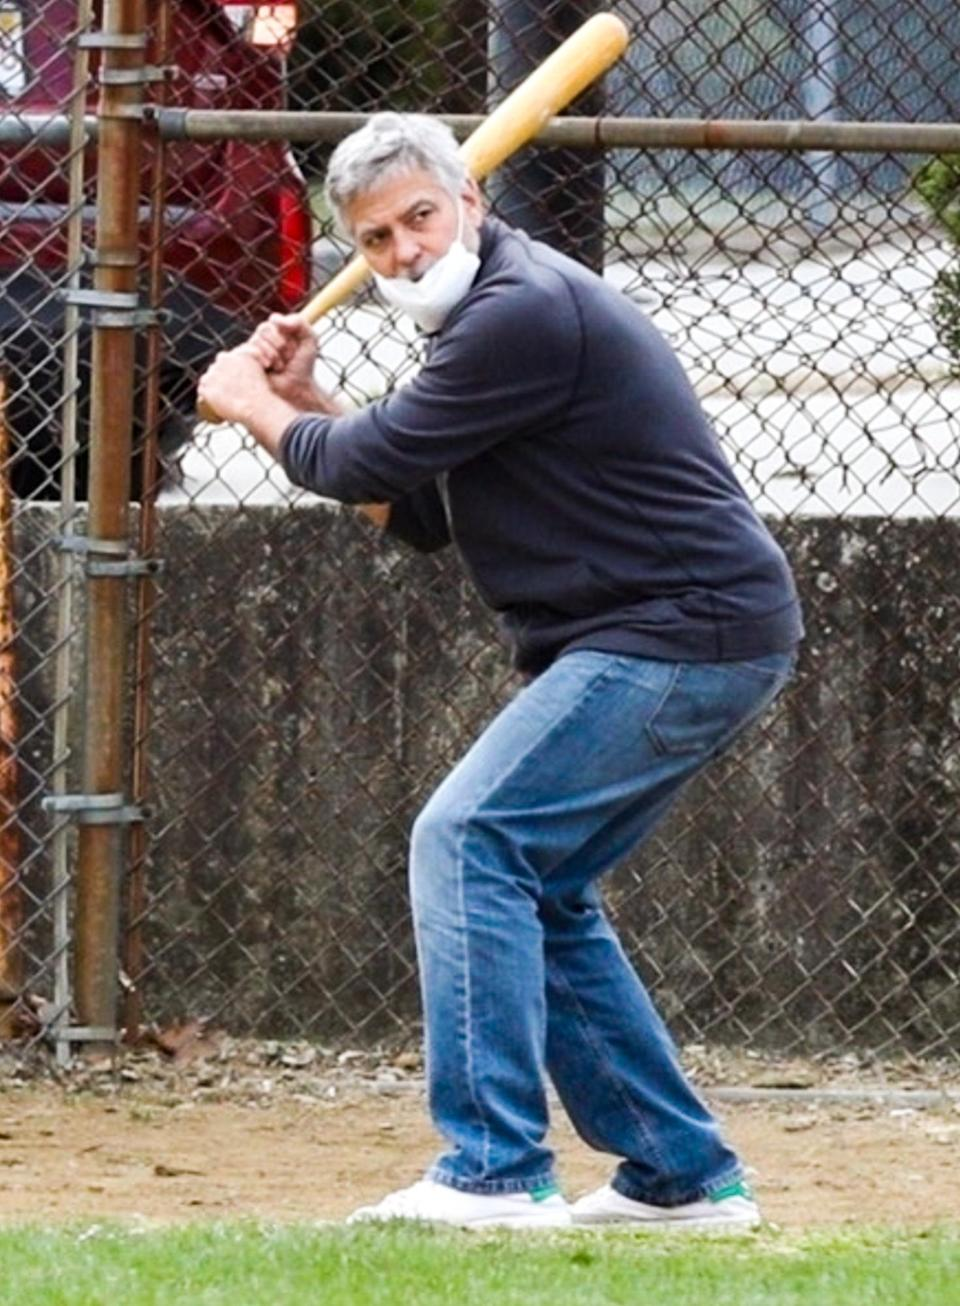 <p>George Clooney takes a few swings in between filming his upcoming film <em>The Tender Bar</em> on Wednesday in Boston.</p>